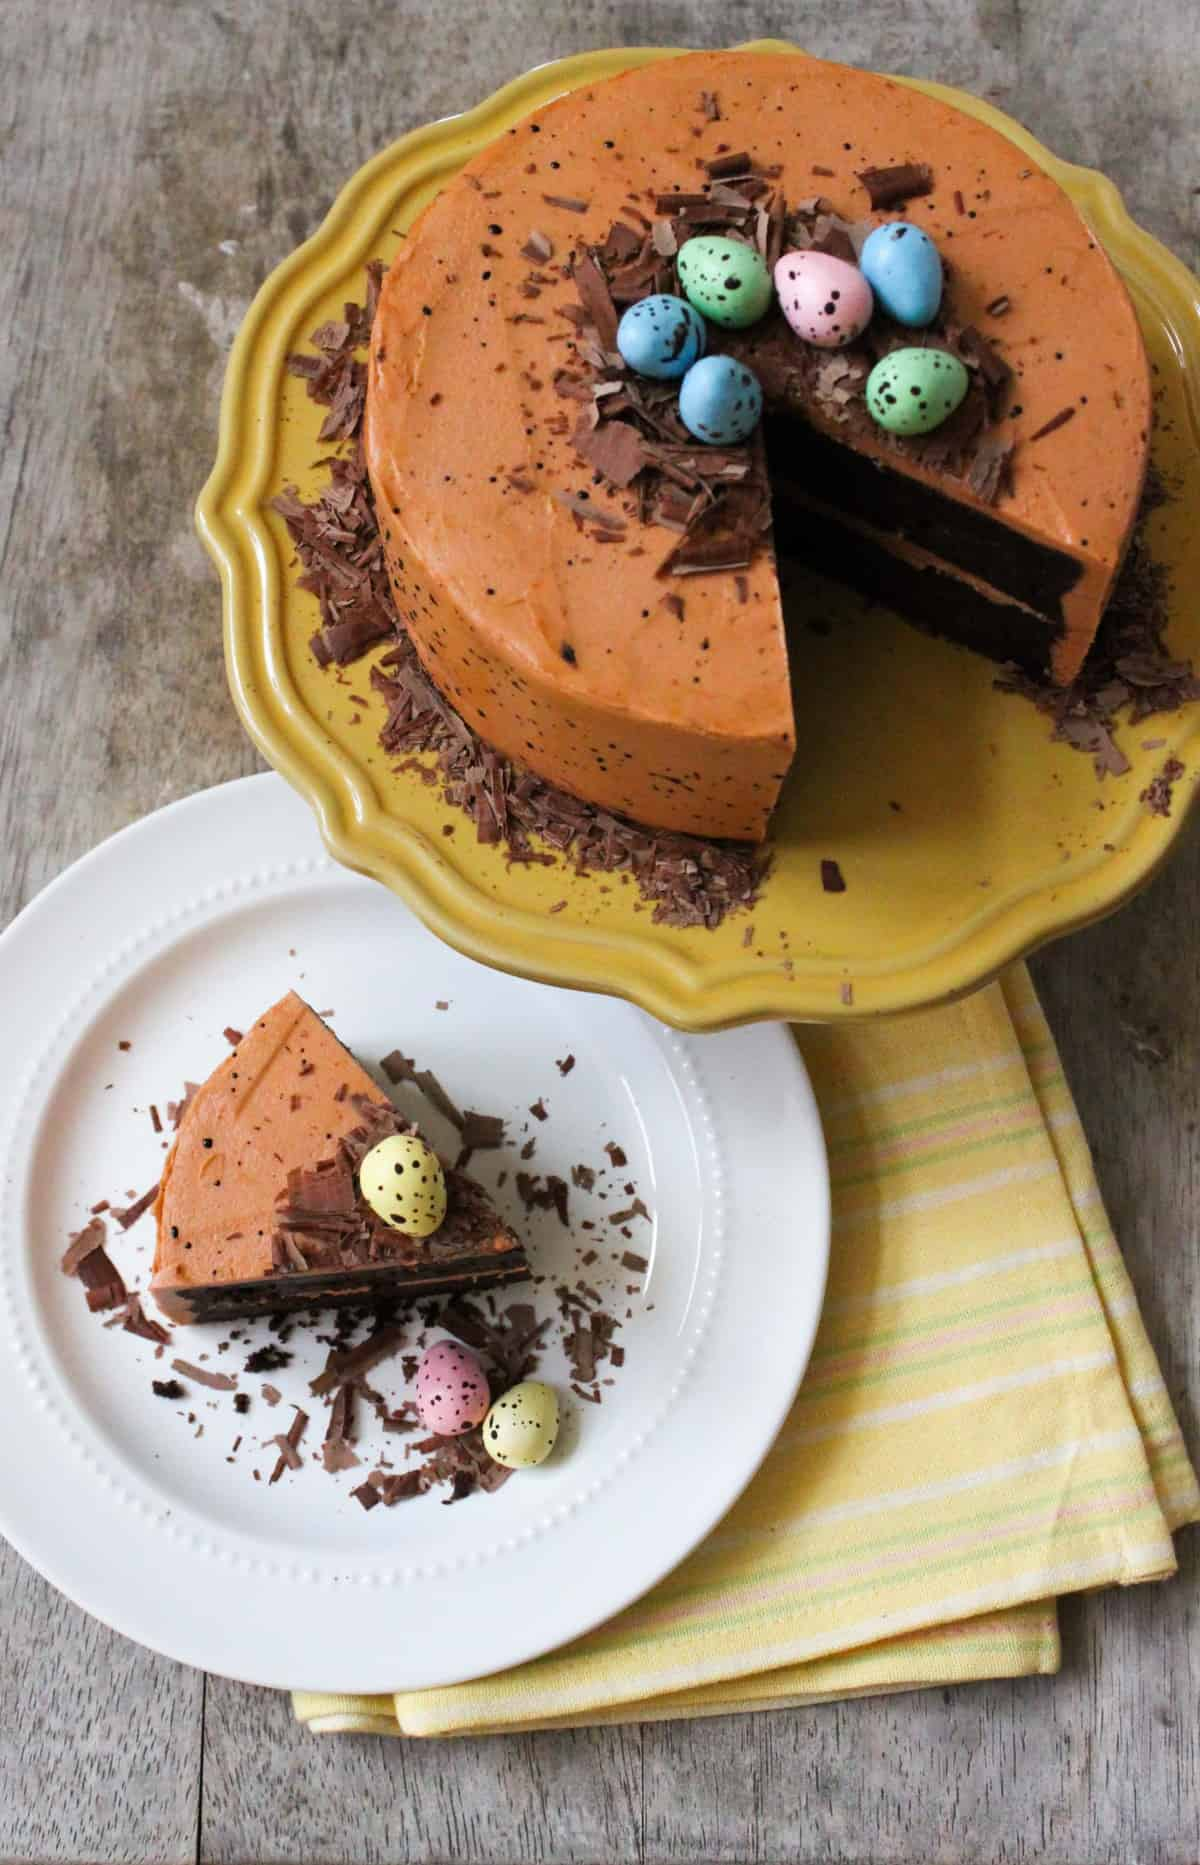 Speckled Egg Chocolate Cake The Little Epicurean